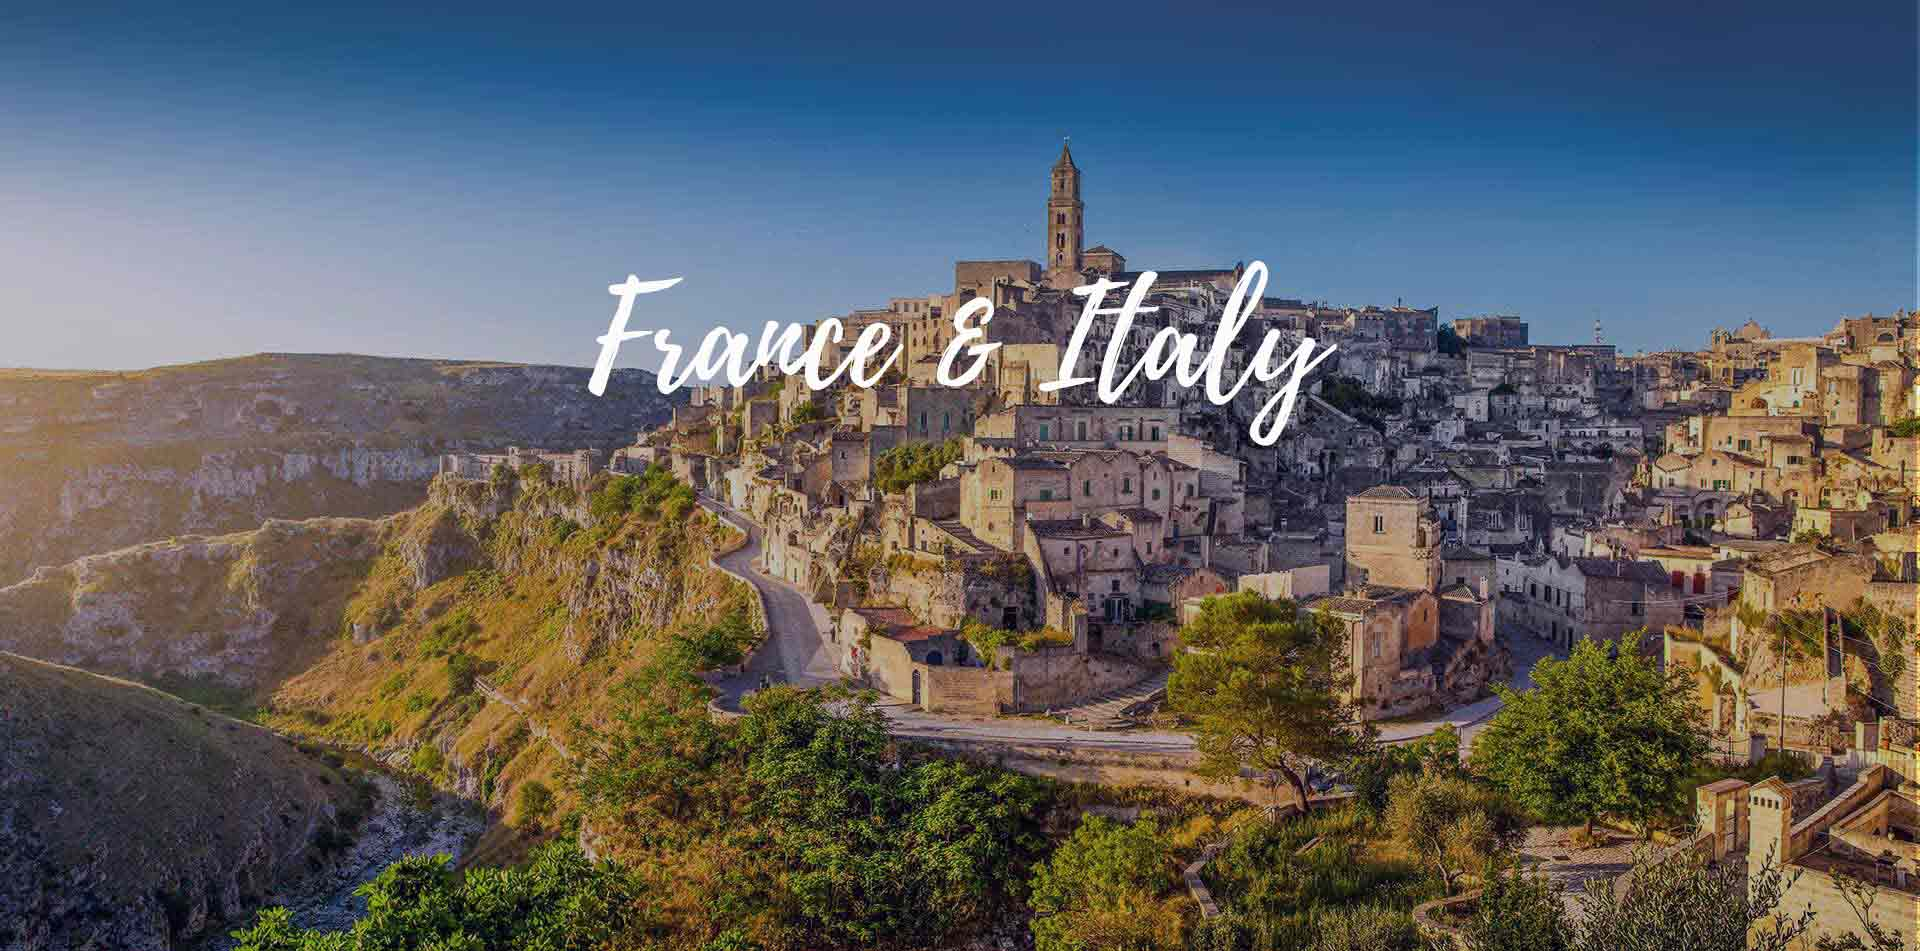 Europe France Italy view of cliffside town - luxury vacation destinations